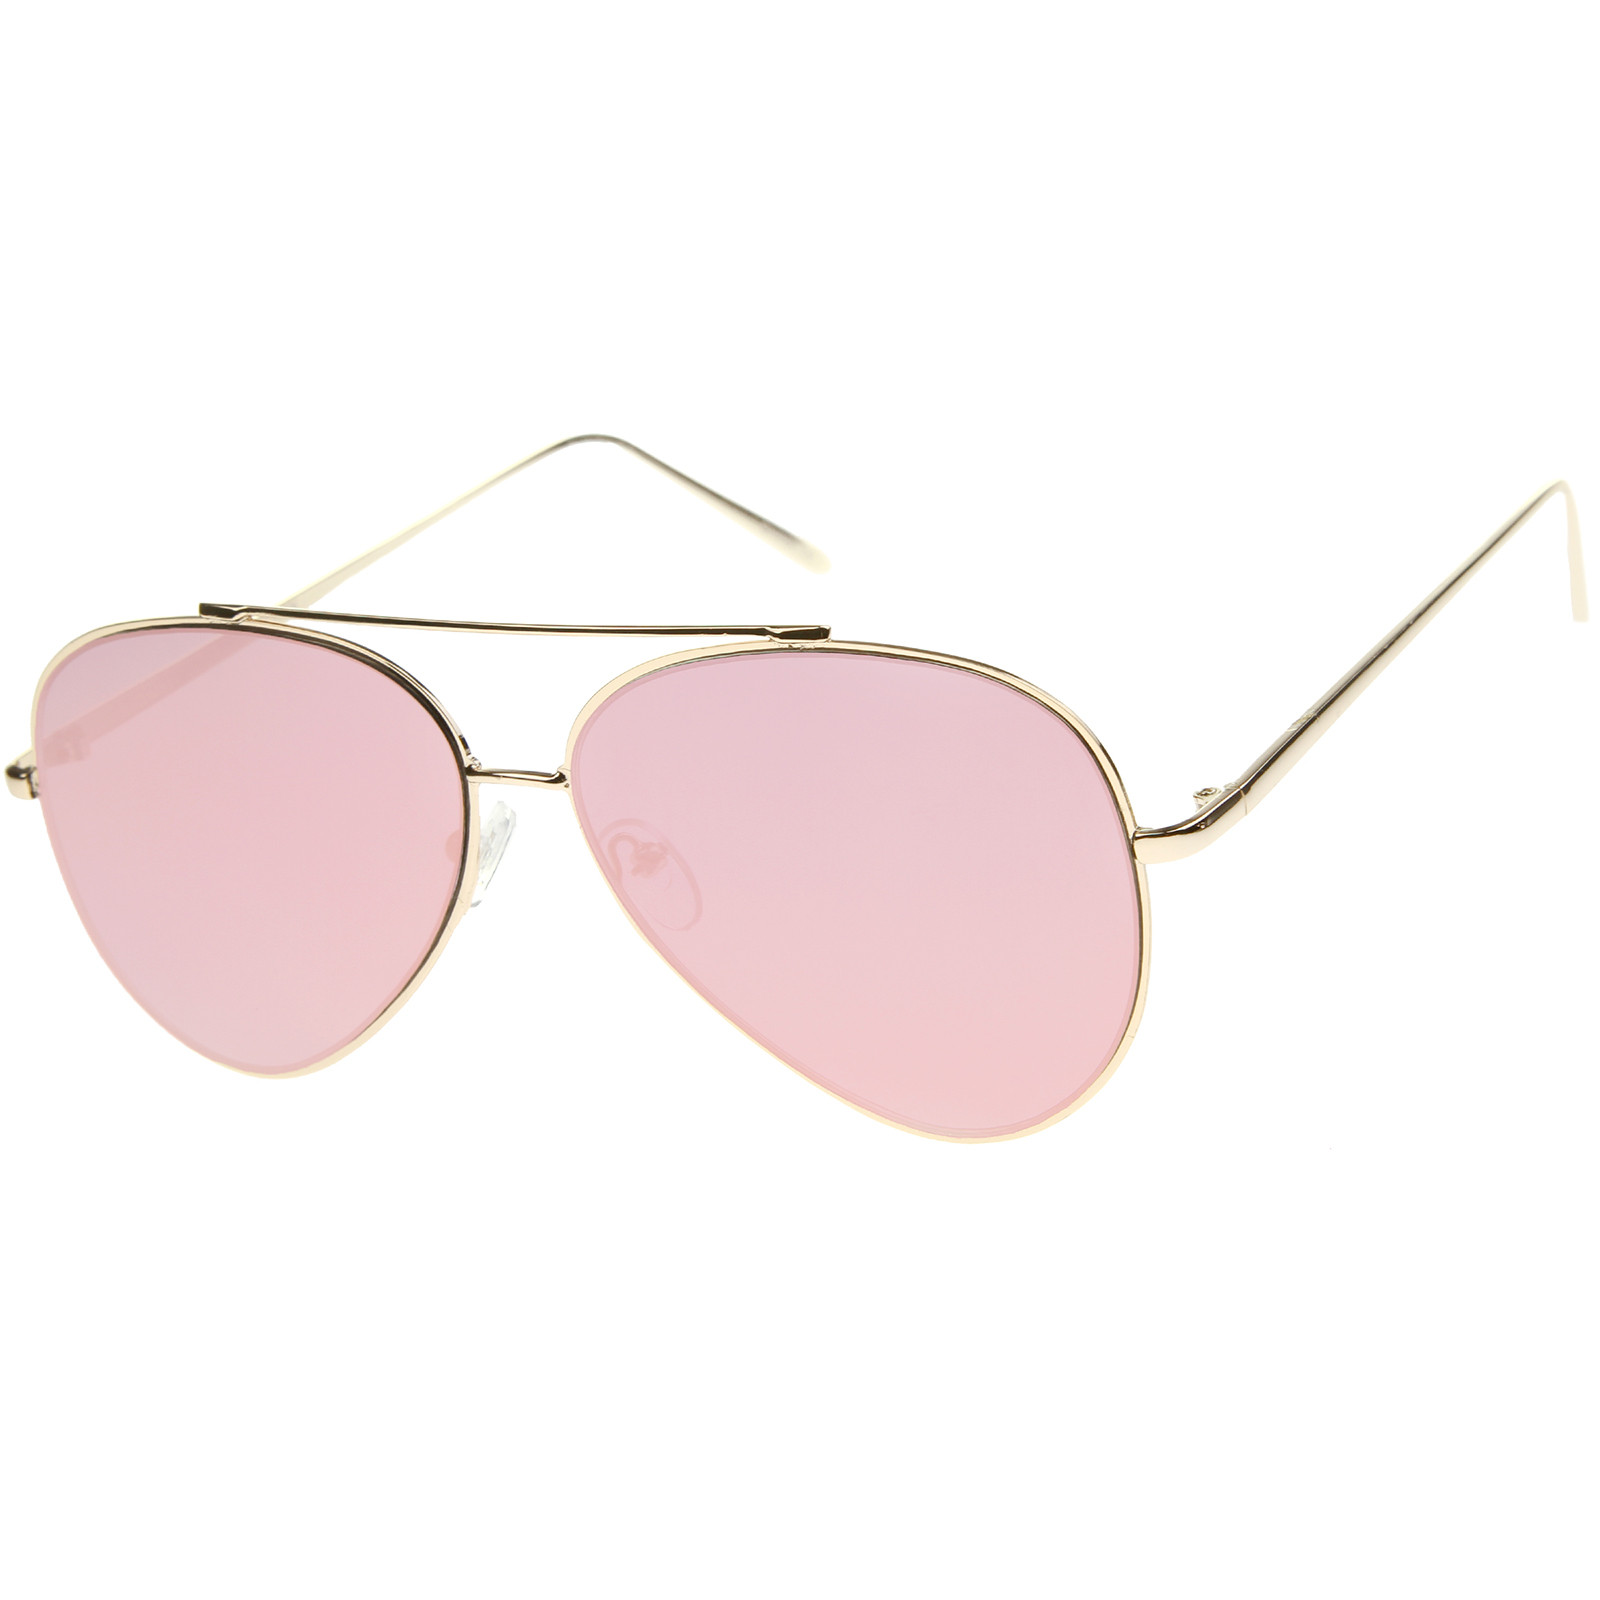 Sunglass.la MOD FASHION TEARDROP RIMLESS MIRROR FLAT LENS METAL FRAME AVIATOR SUNGLASSES 58MM